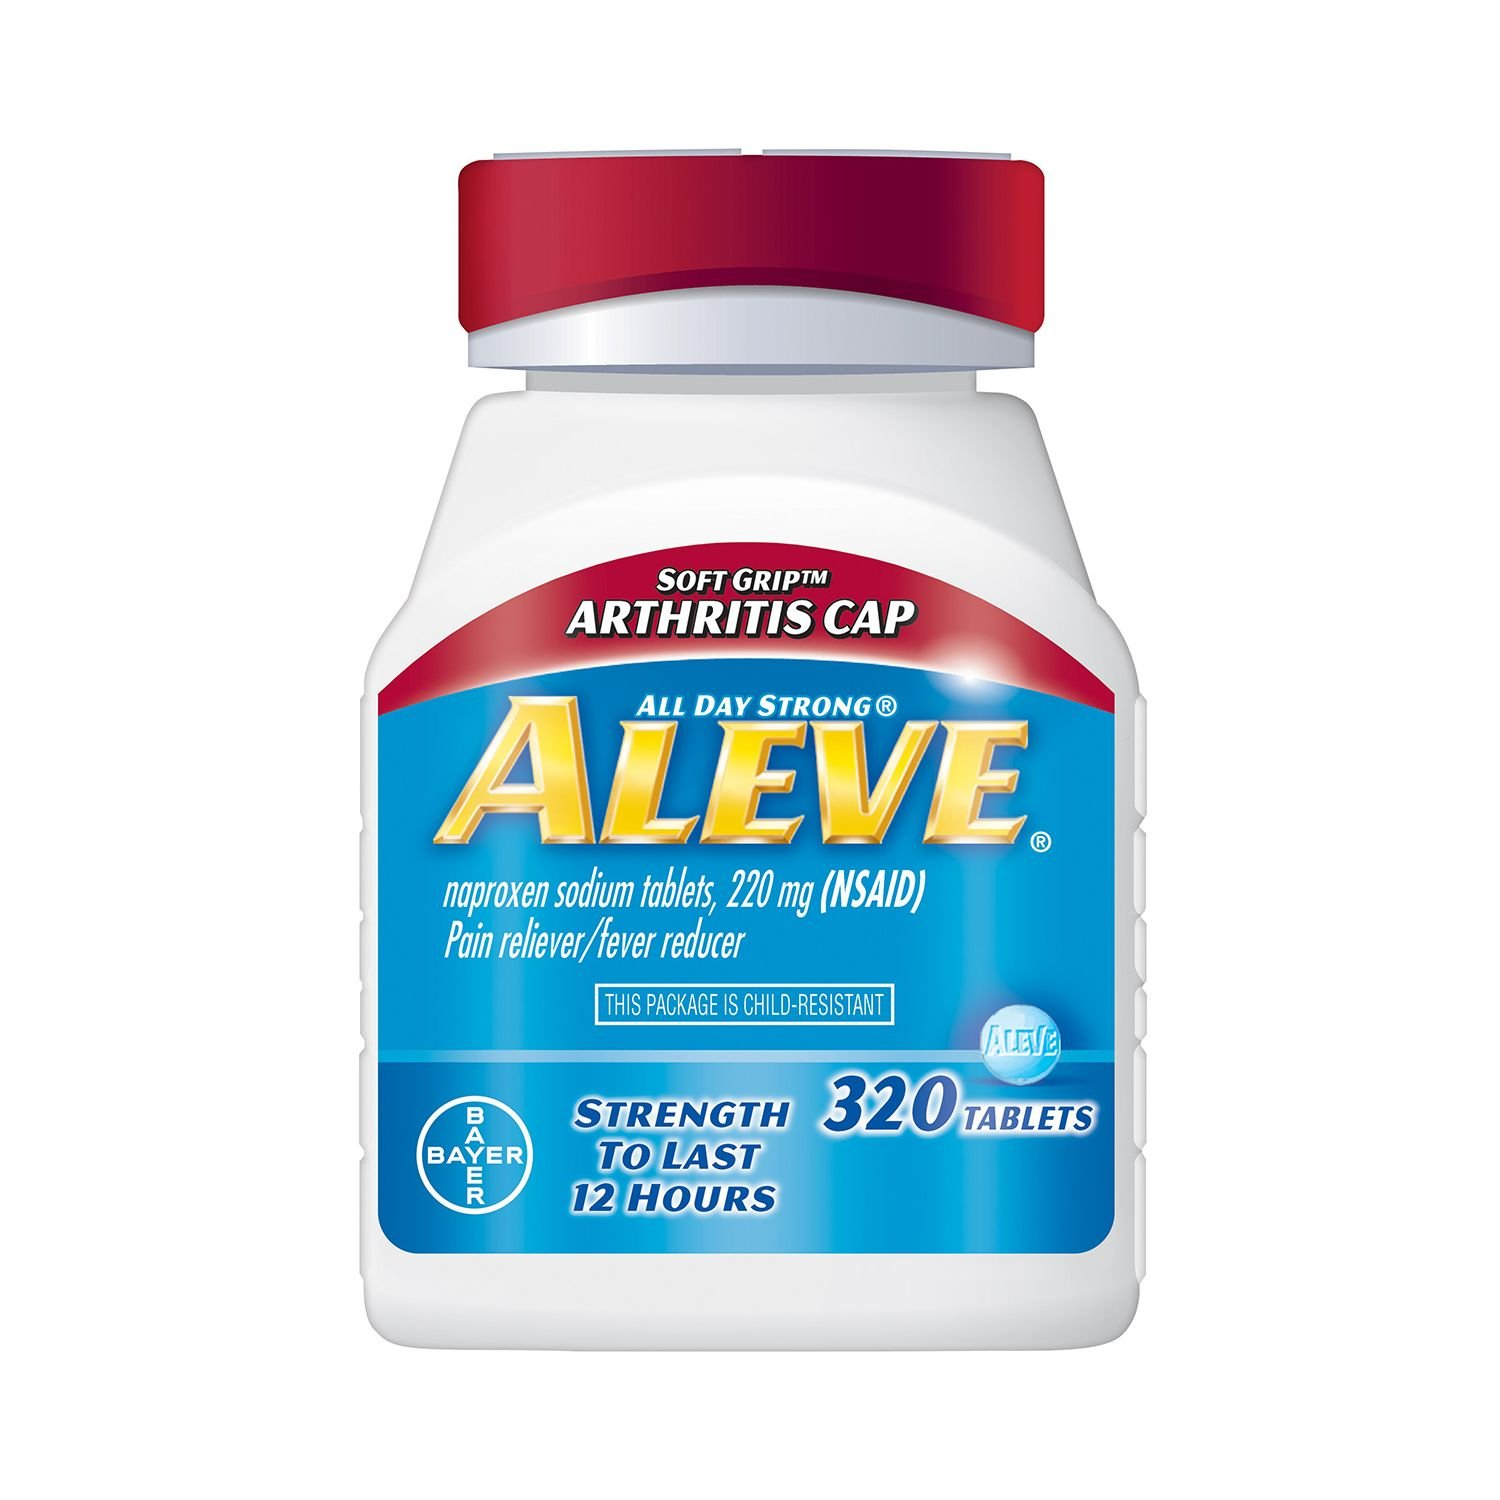 Aleve Pain Reliever Tablets, Arthritis Cap (320 ct.) (pack of 6)